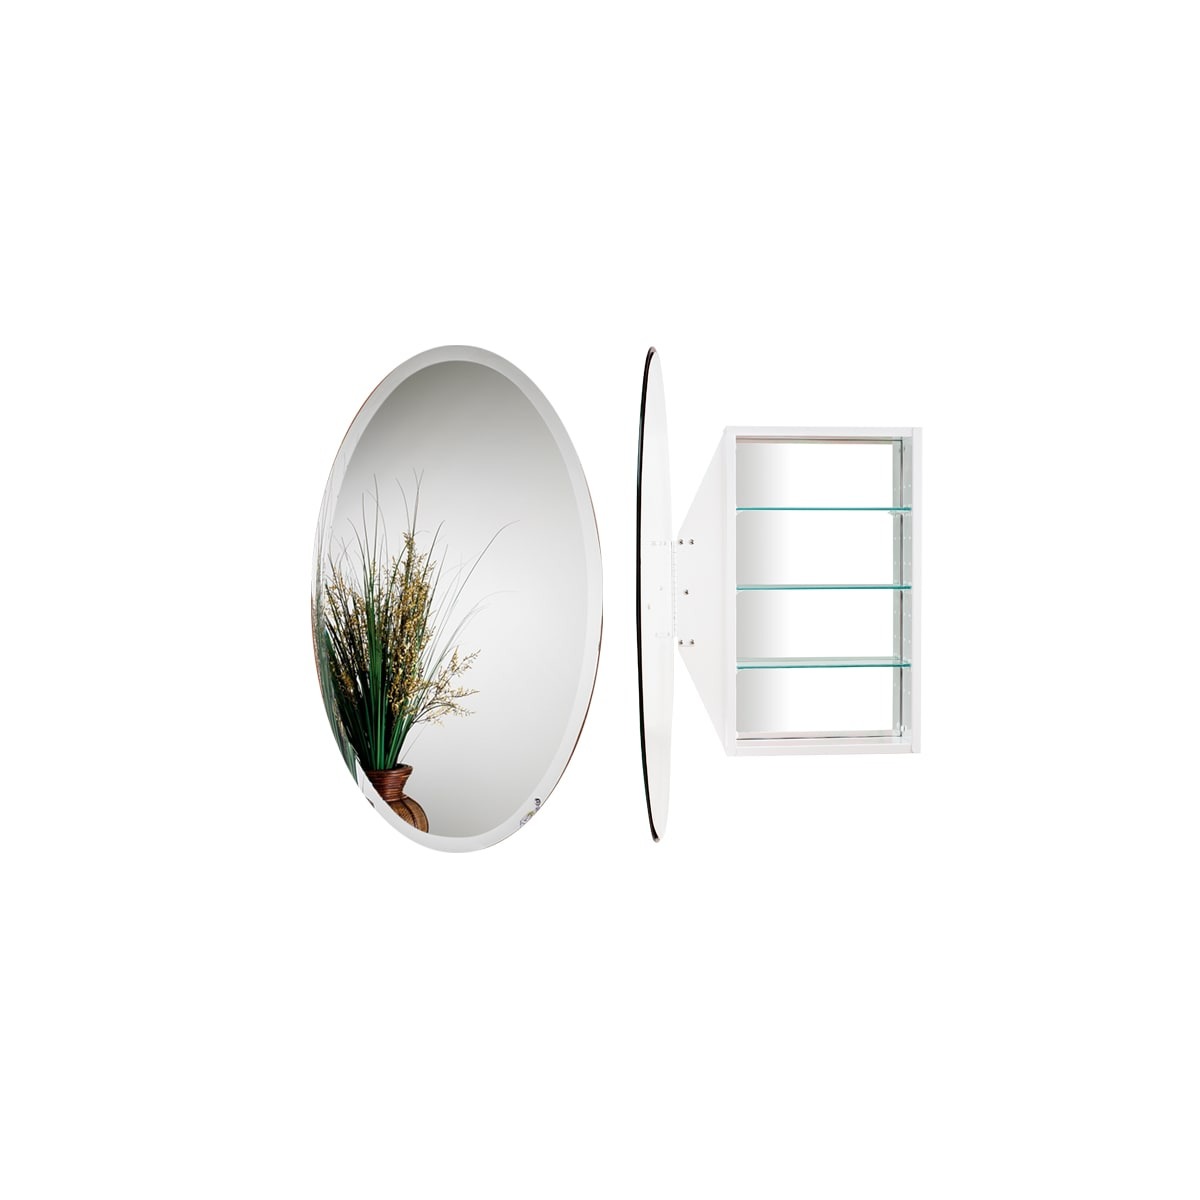 """Alno Standard Oval 21-1/4"""" x 31-1/4"""" Oval Single Door Recessed Medicine Cabinet with White Interior"""